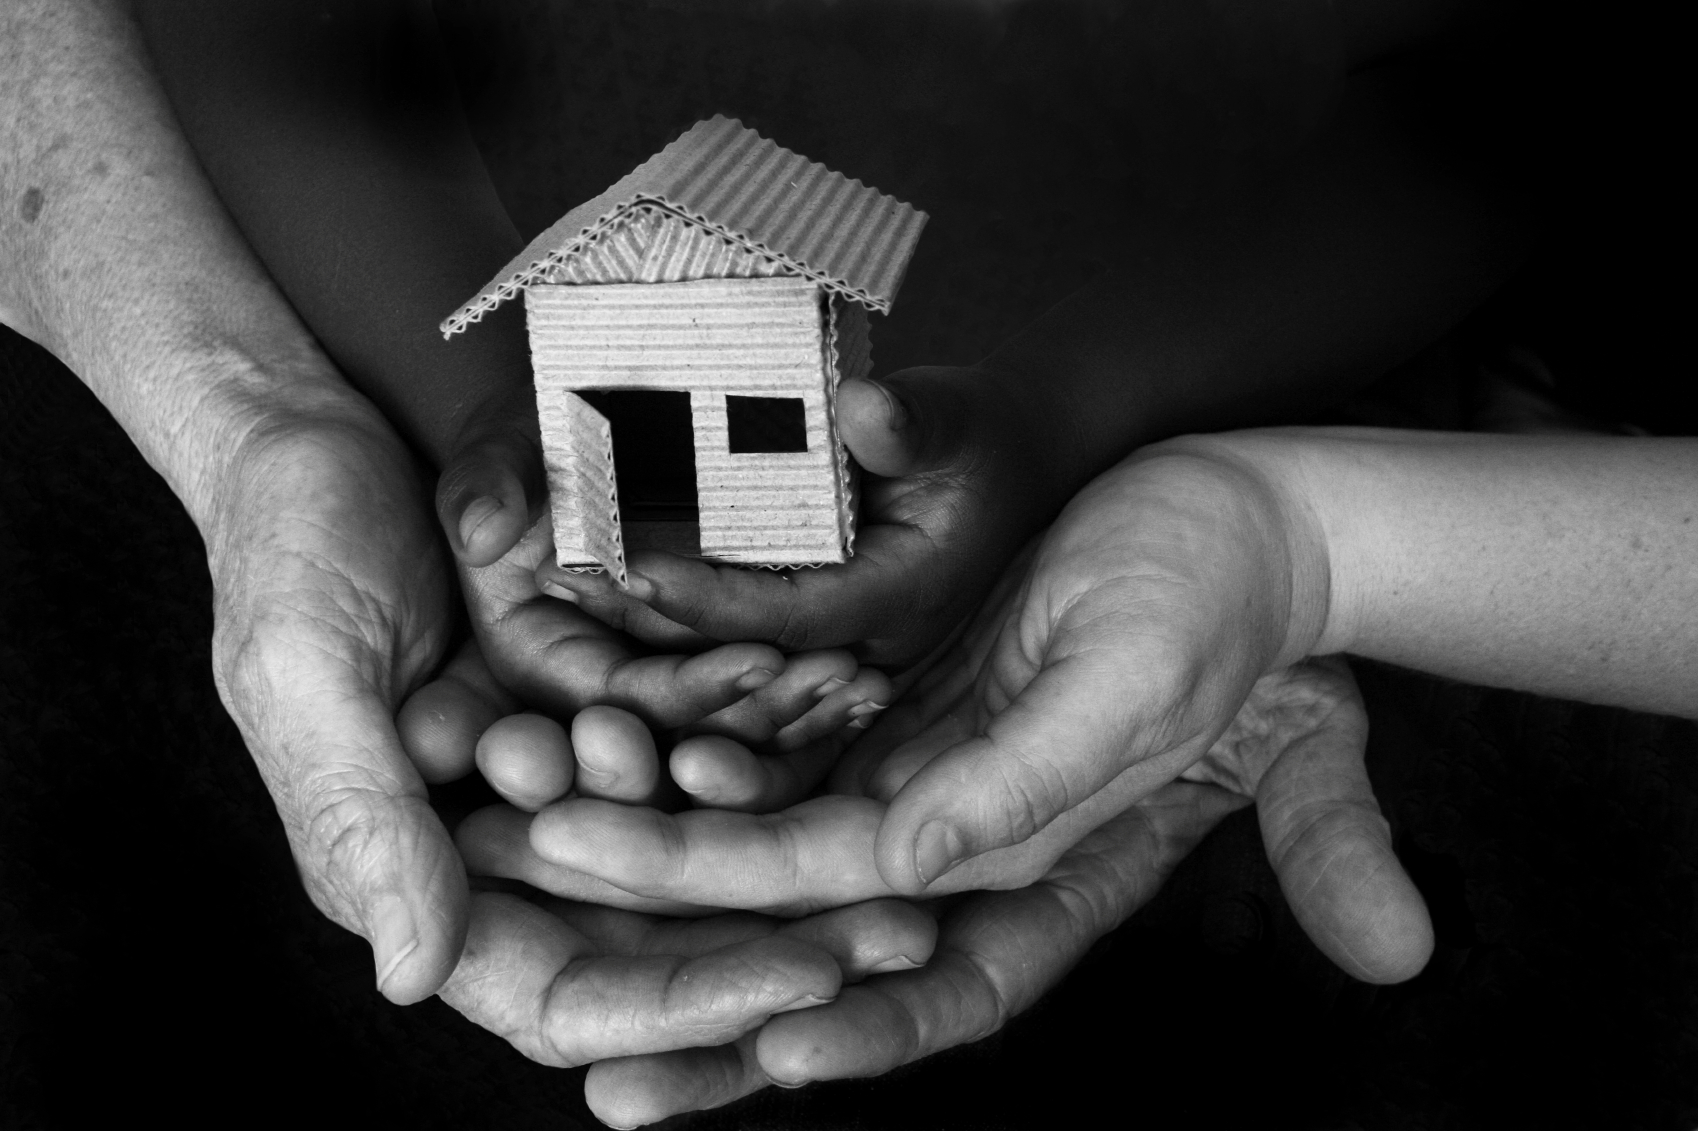 hands-holding-house-image.jpg